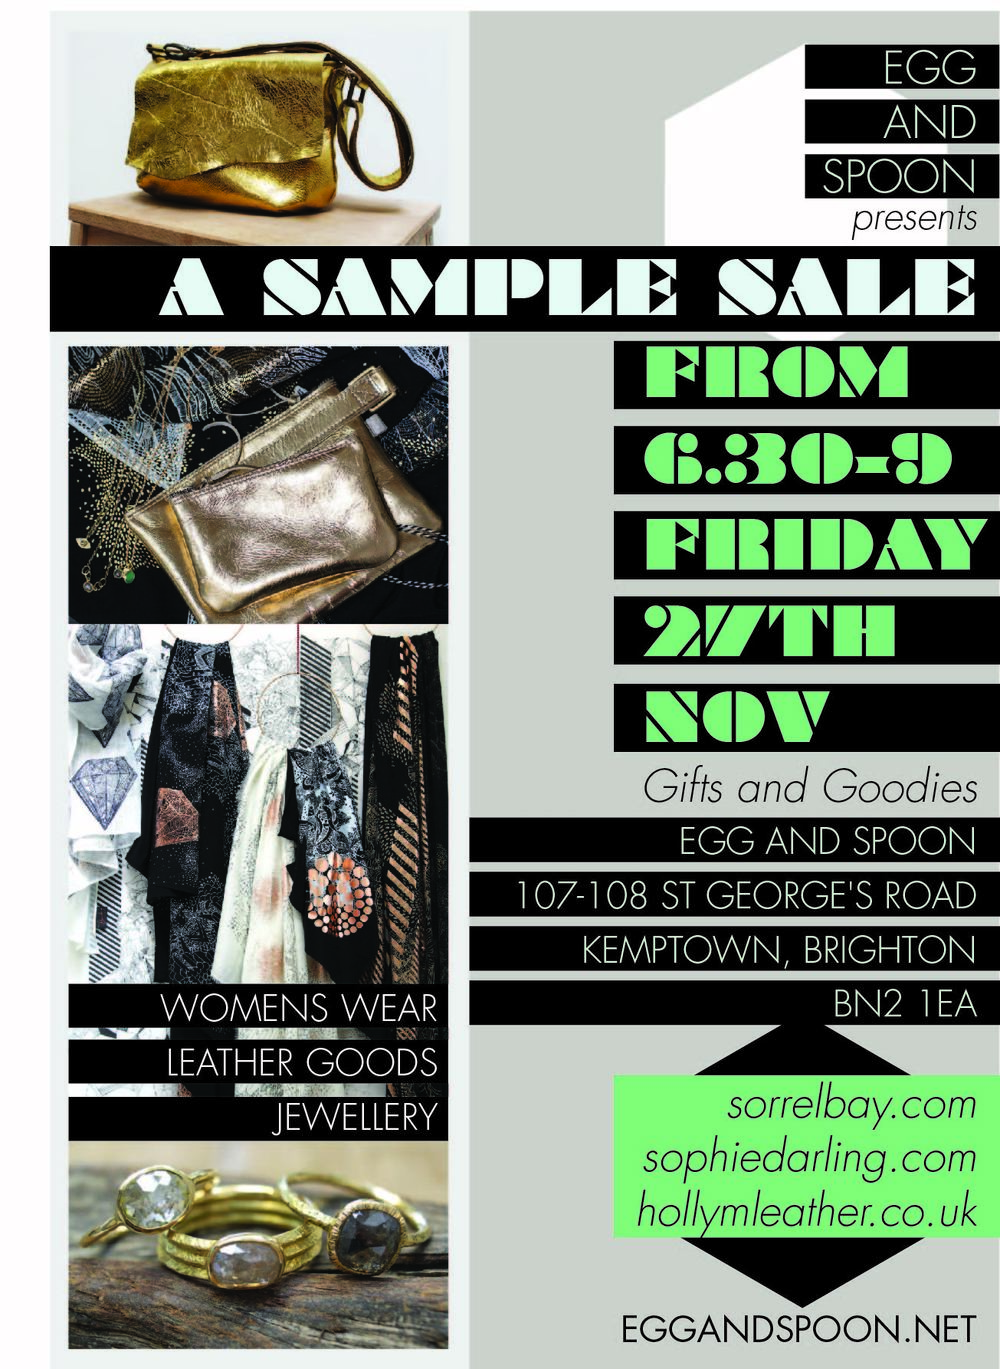 Sample Sale at Egg and spoon.png